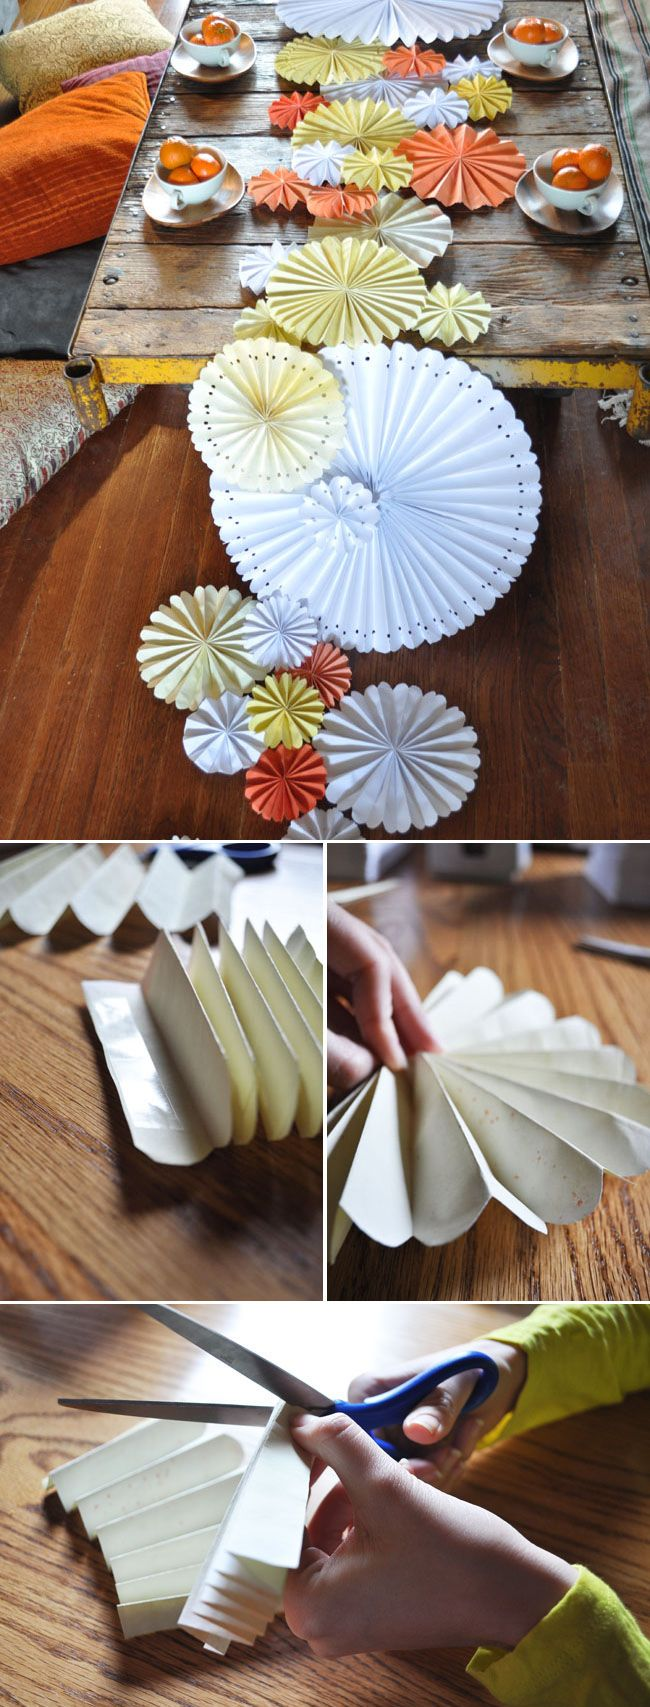 DIY pinwheel table runner - tutorial from green wedding shoes, here: http://greenweddingshoes.com/diy-pinwheel-table-runner/